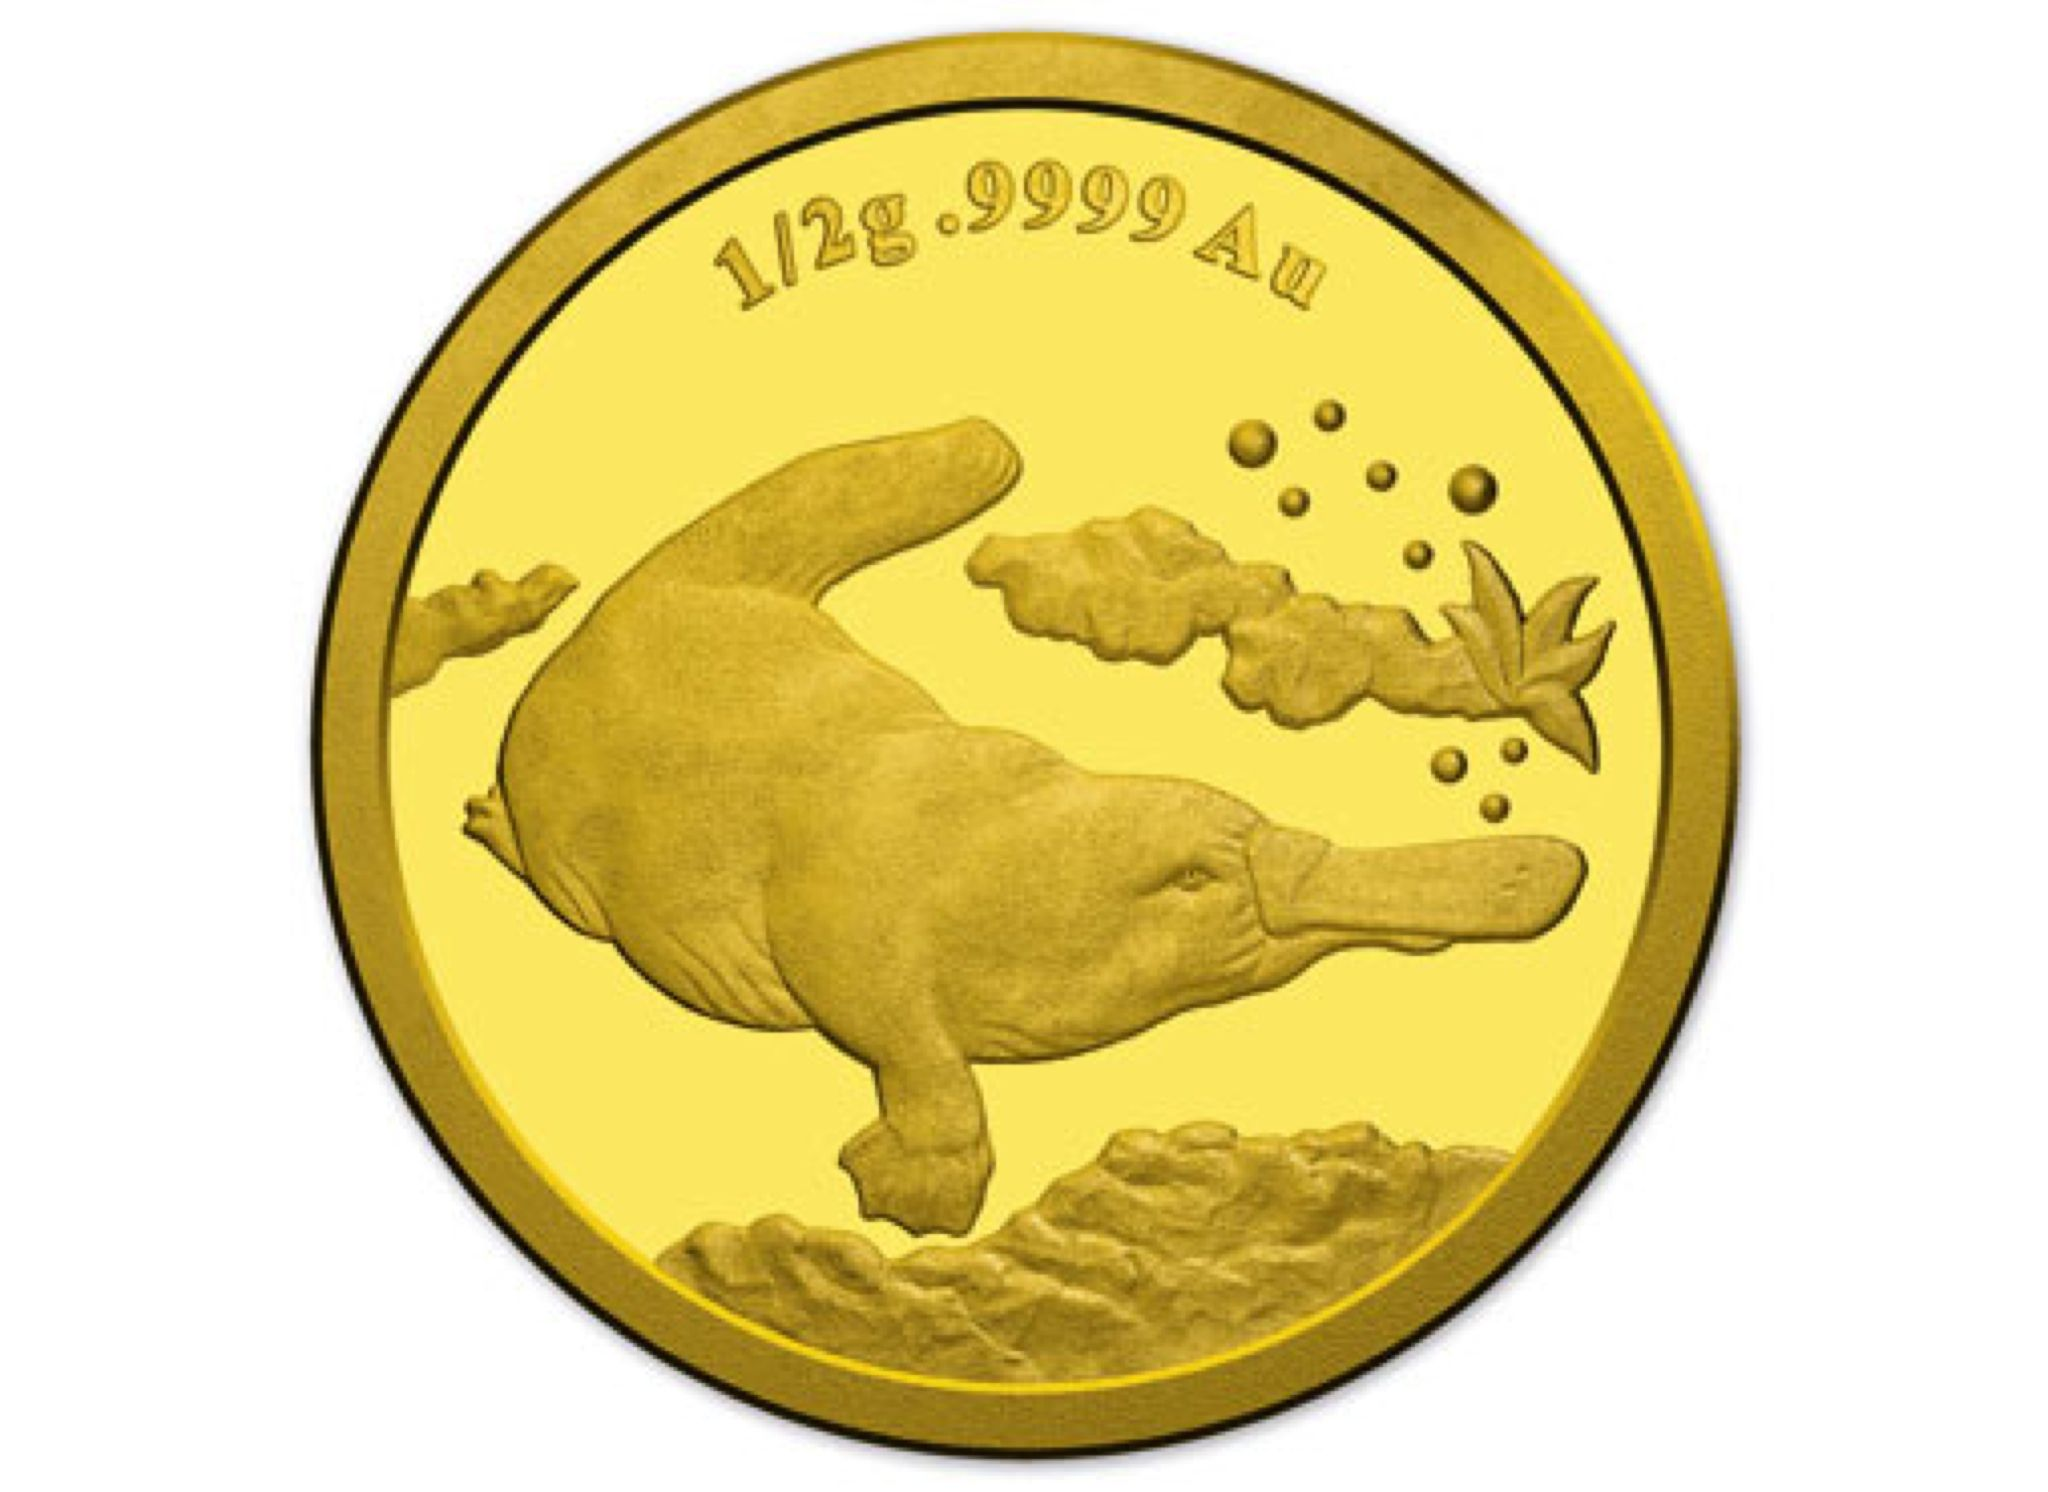 2014 $2 Gold Proof Coin - Platypus Coin - $2 (2014) front image (front cover)